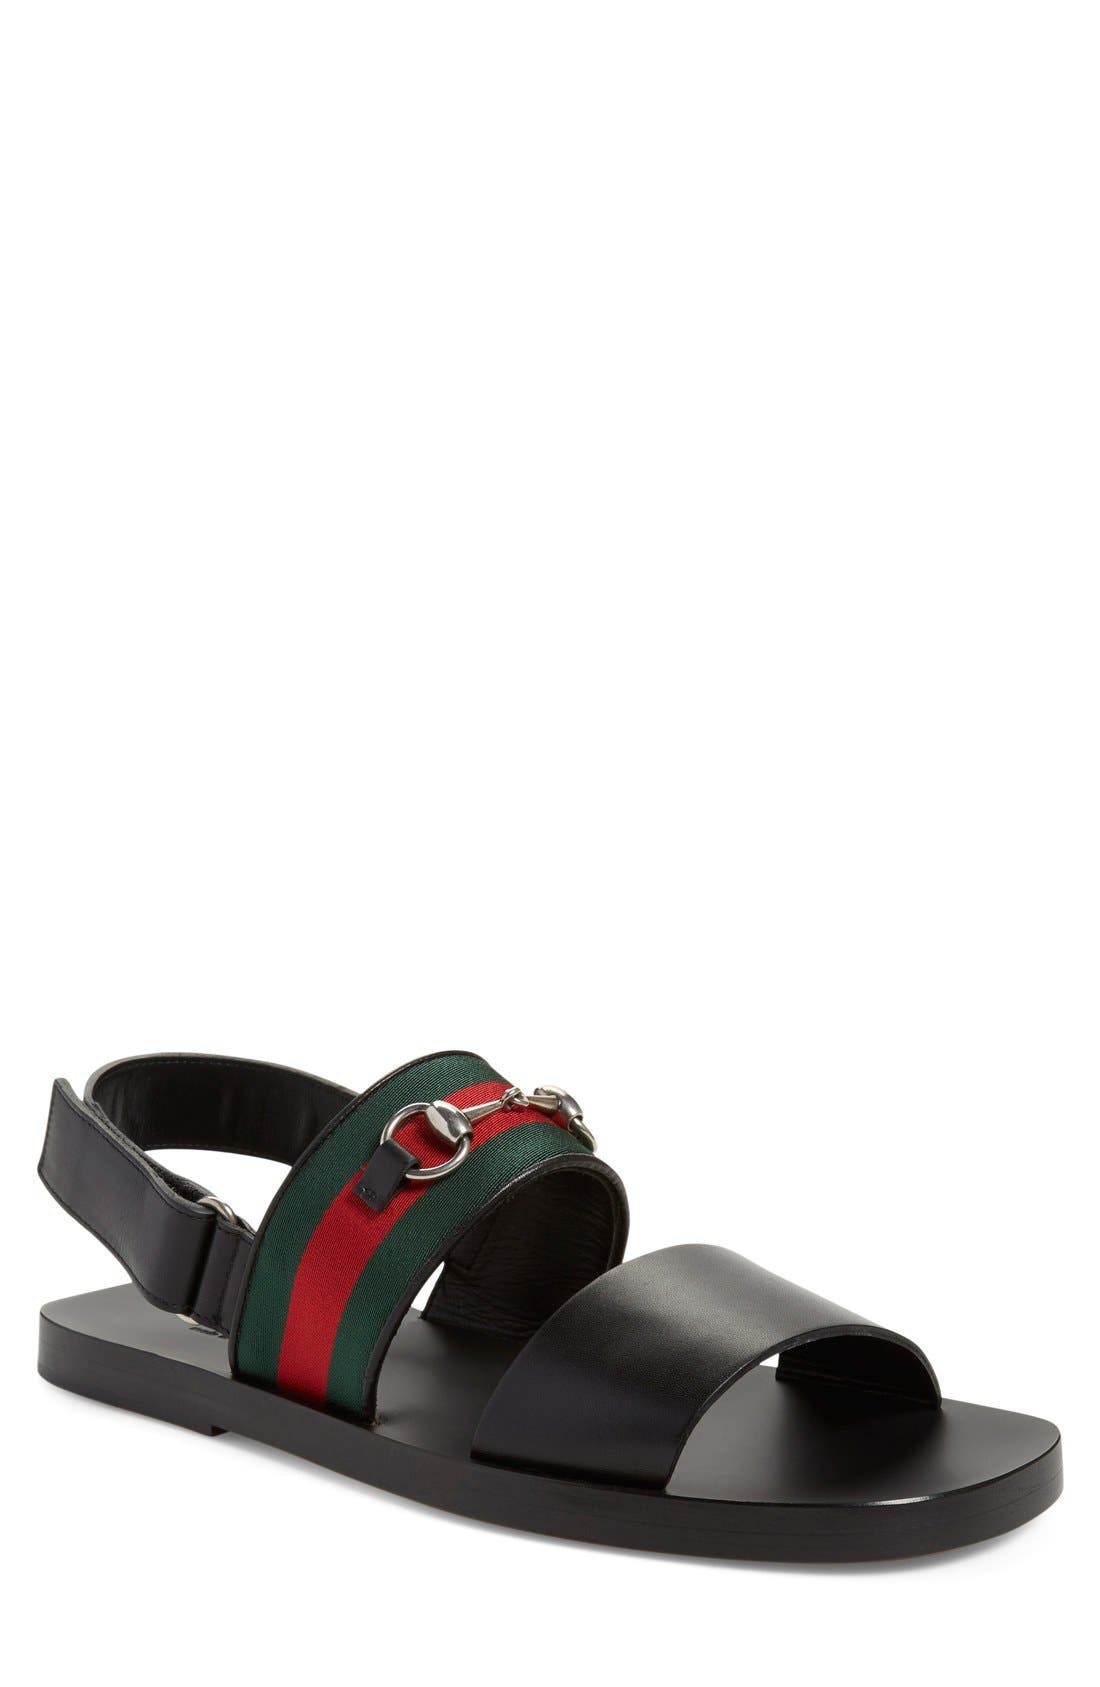 Main Image - Gucci 'Twelve Strap' Sandal (Men)